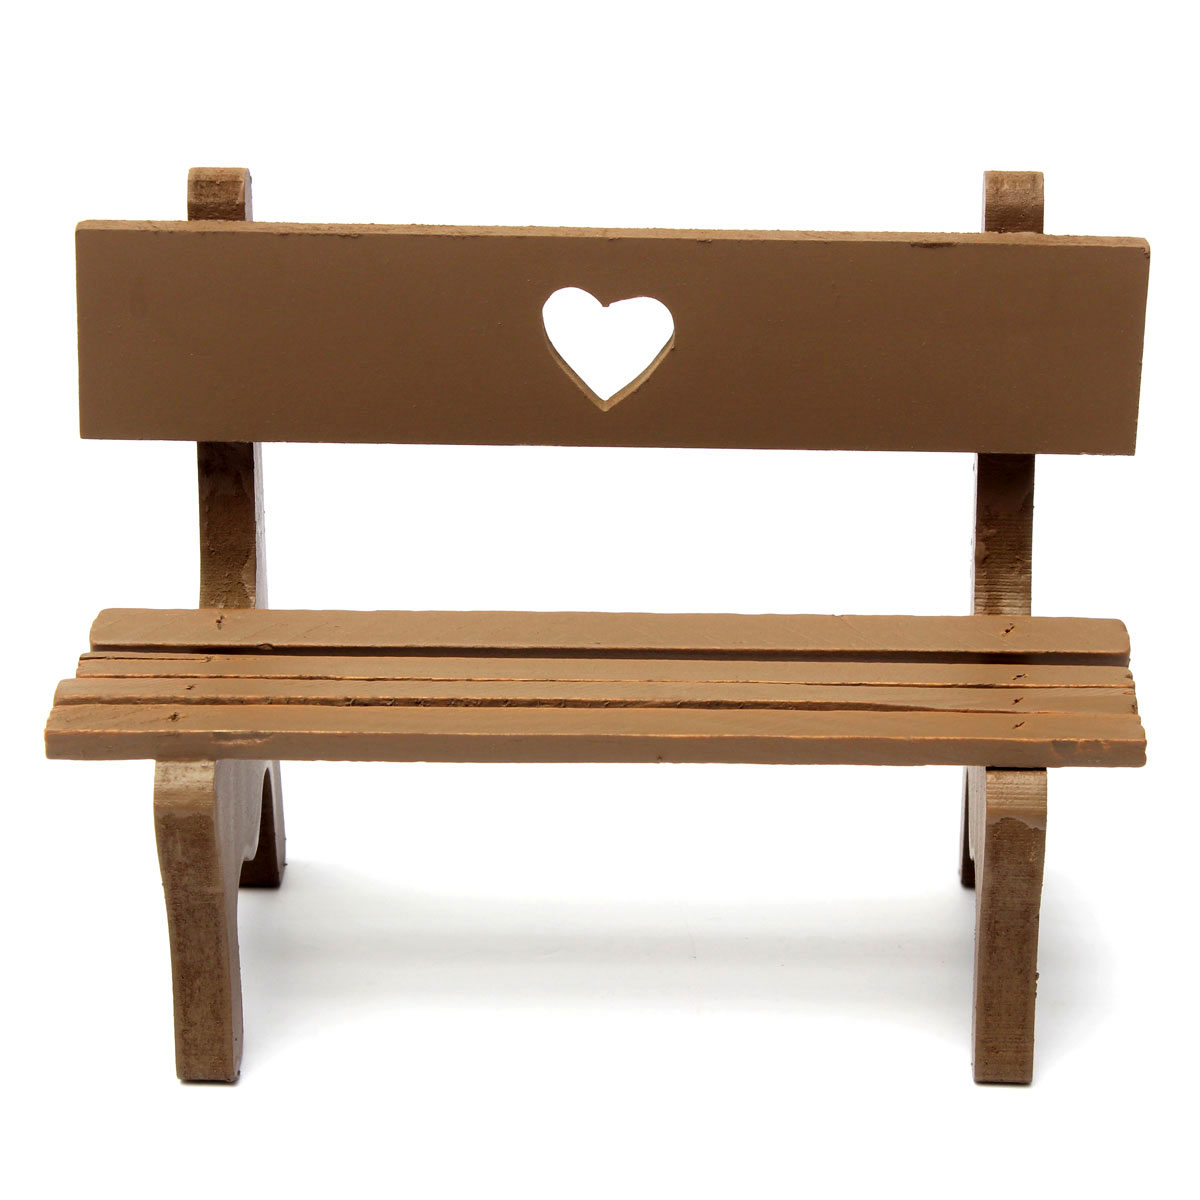 Marvelous photograph of   GIFT Garden Wooden Chair Bench Model Wedding Cake Doll House Decor with #361B0D color and 1200x1200 pixels